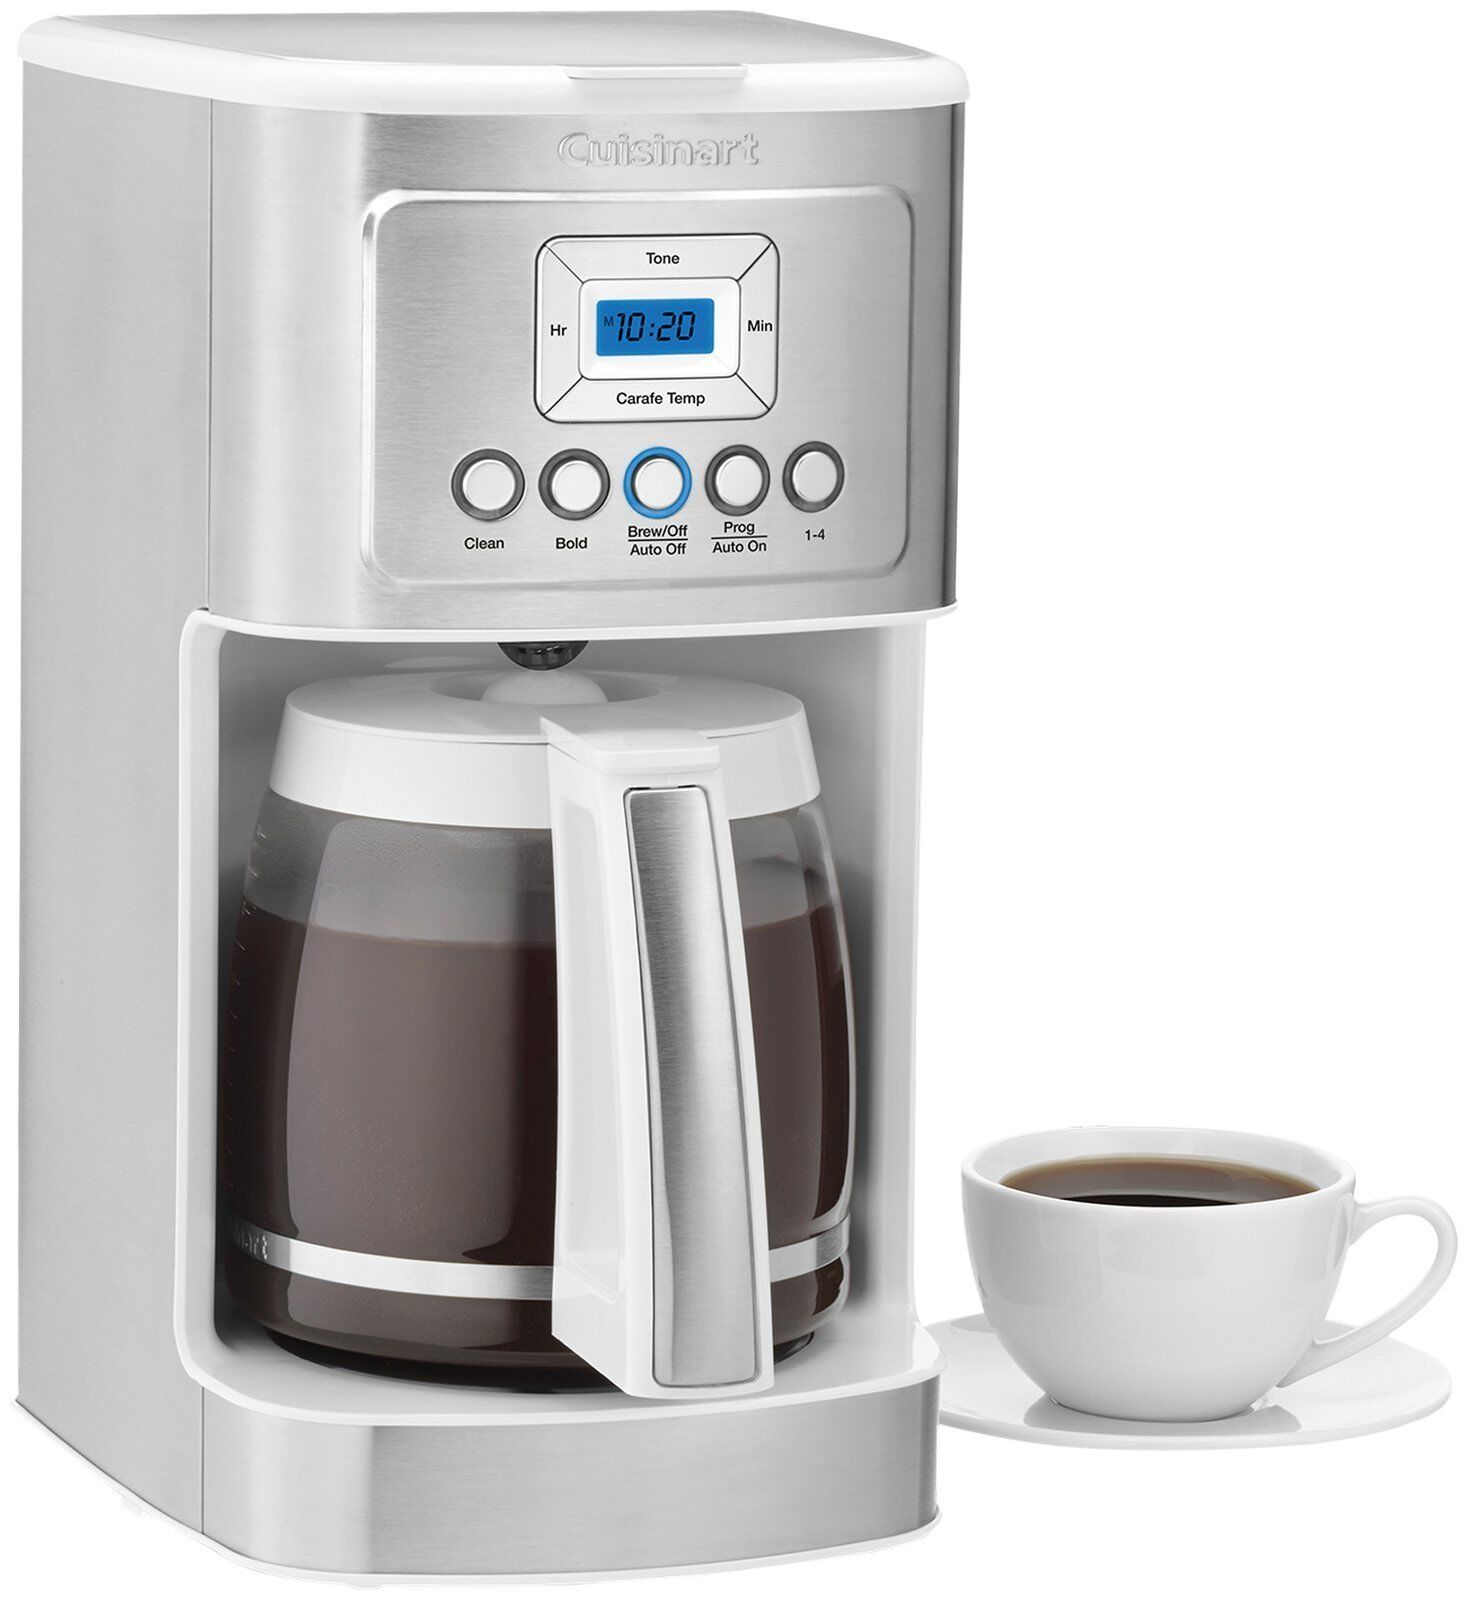 Cuisinart 14-cup Programmable Coffeemaker - Programmable - 14 Cup - Coffee